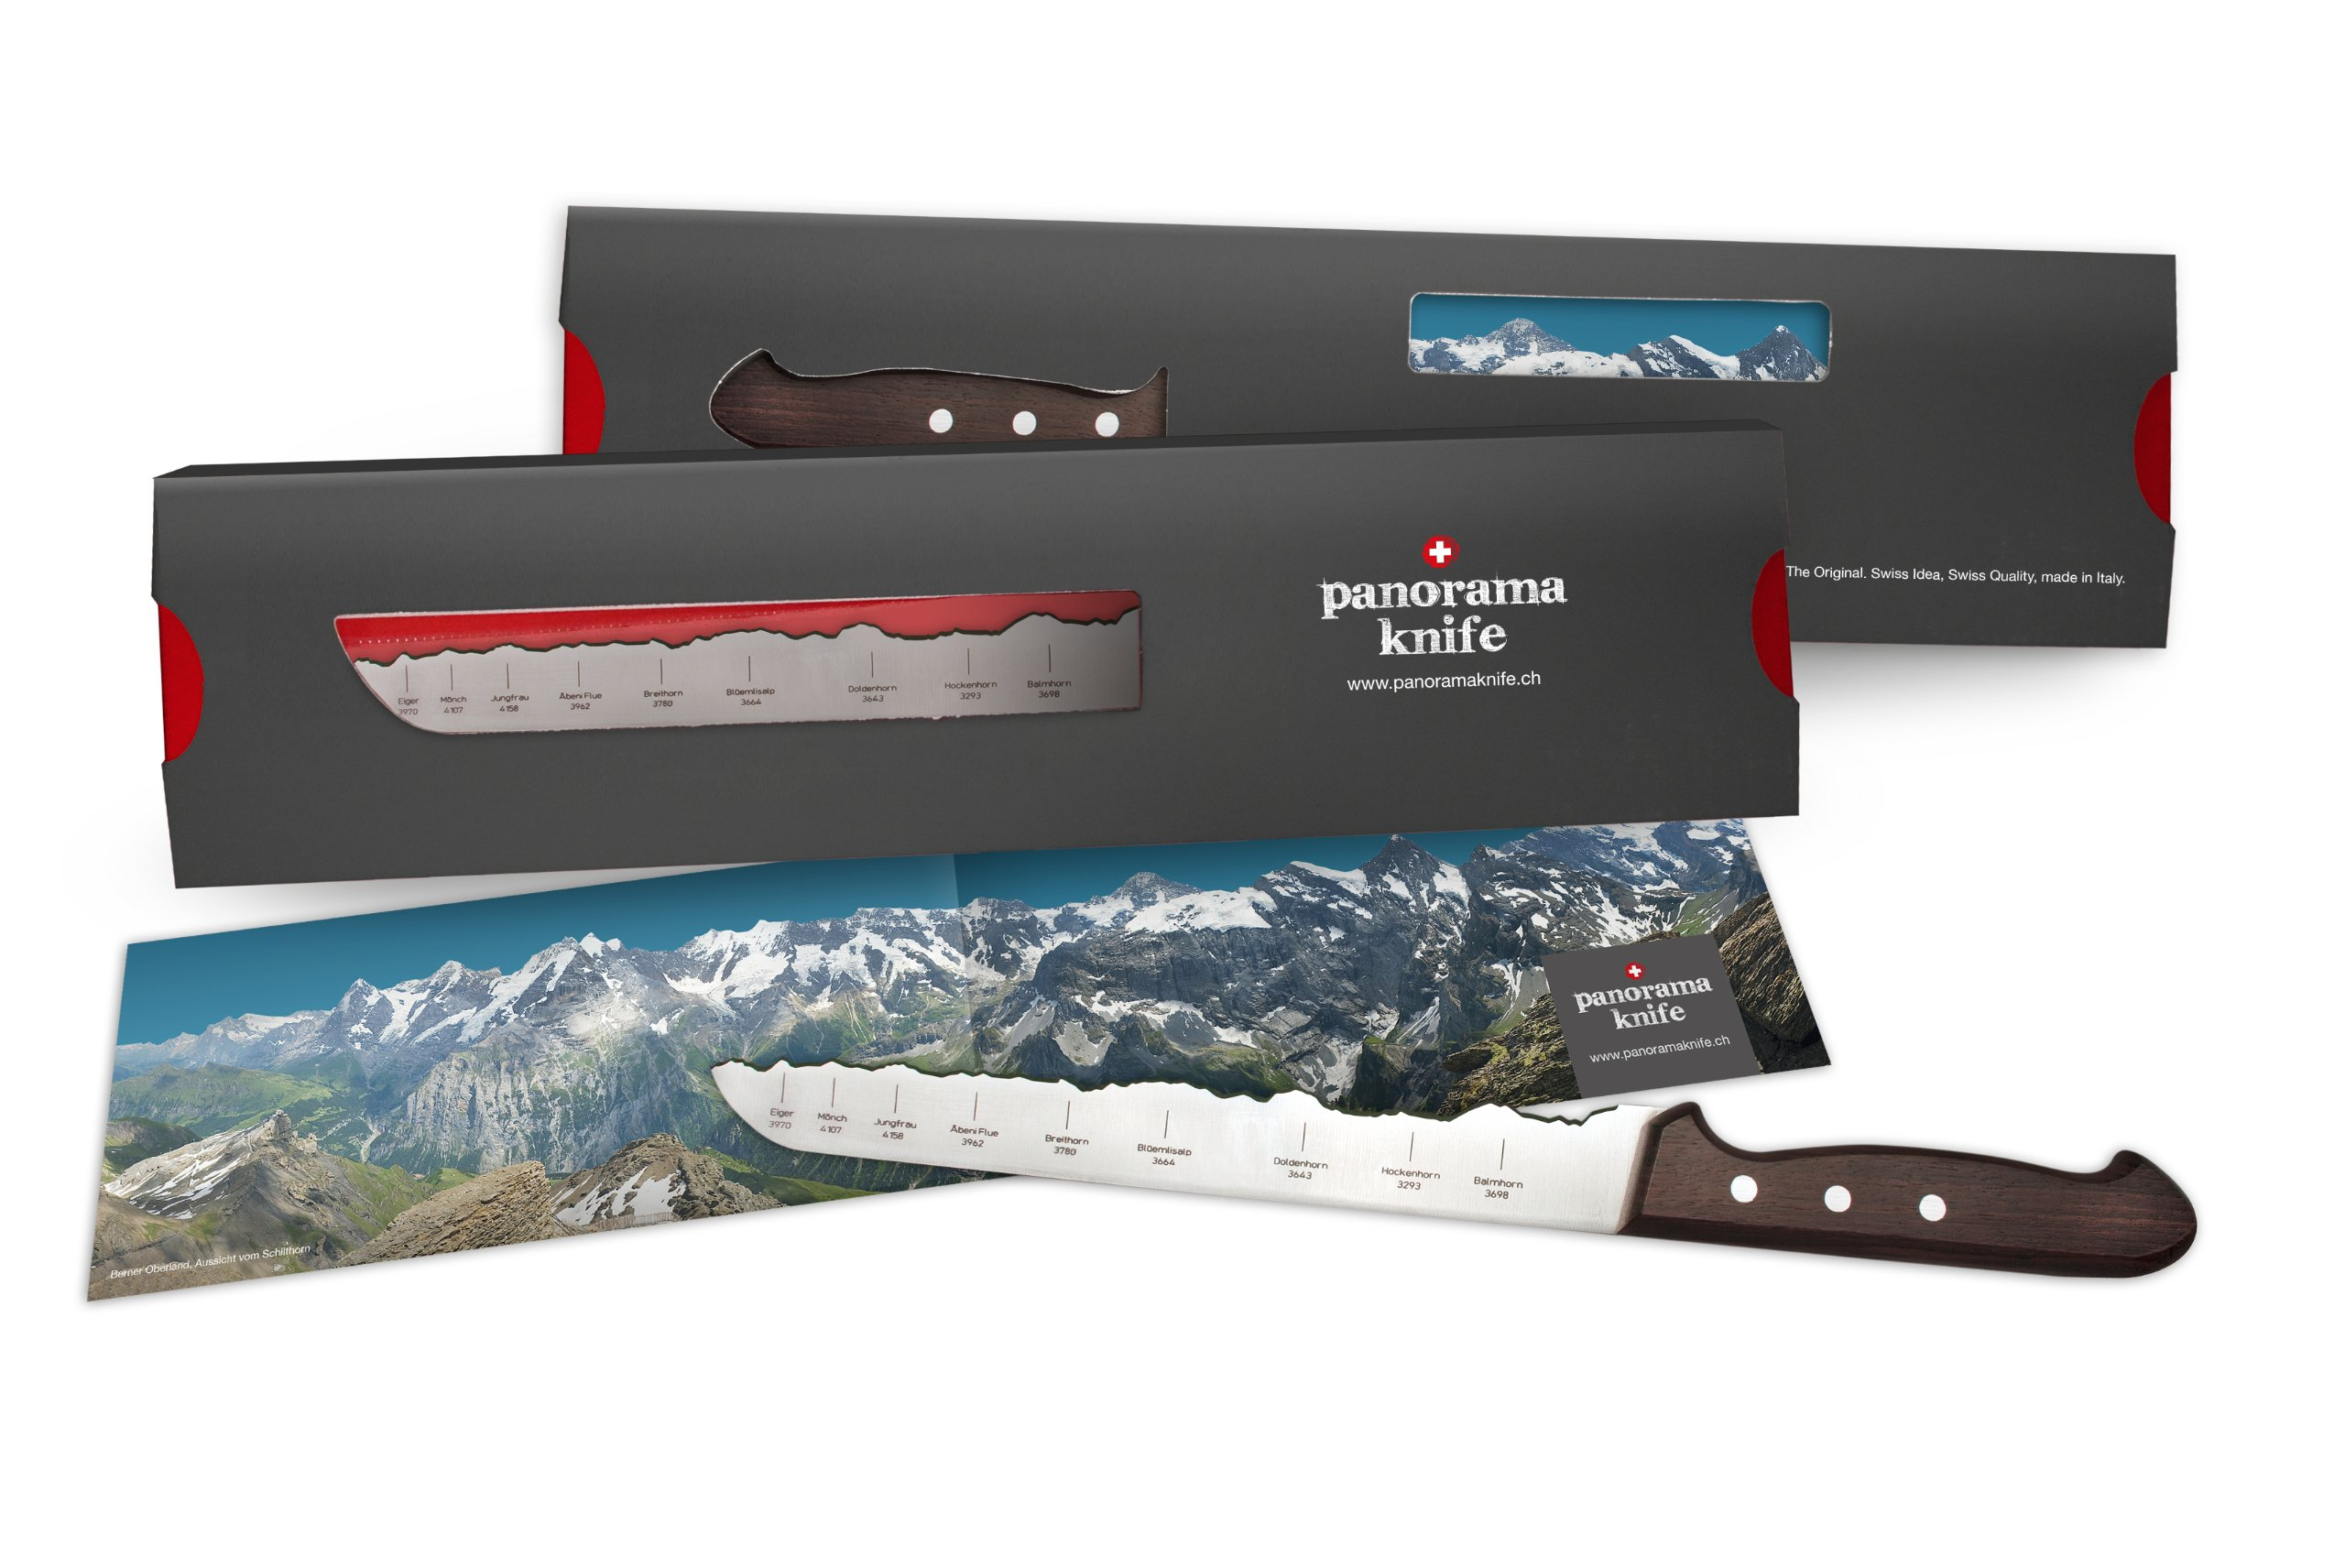 PanoramaKnife bread knife with the Swiss Alps - Eiger, Mönch, Jungfrau with Wooden Handle by PanoramaKnife